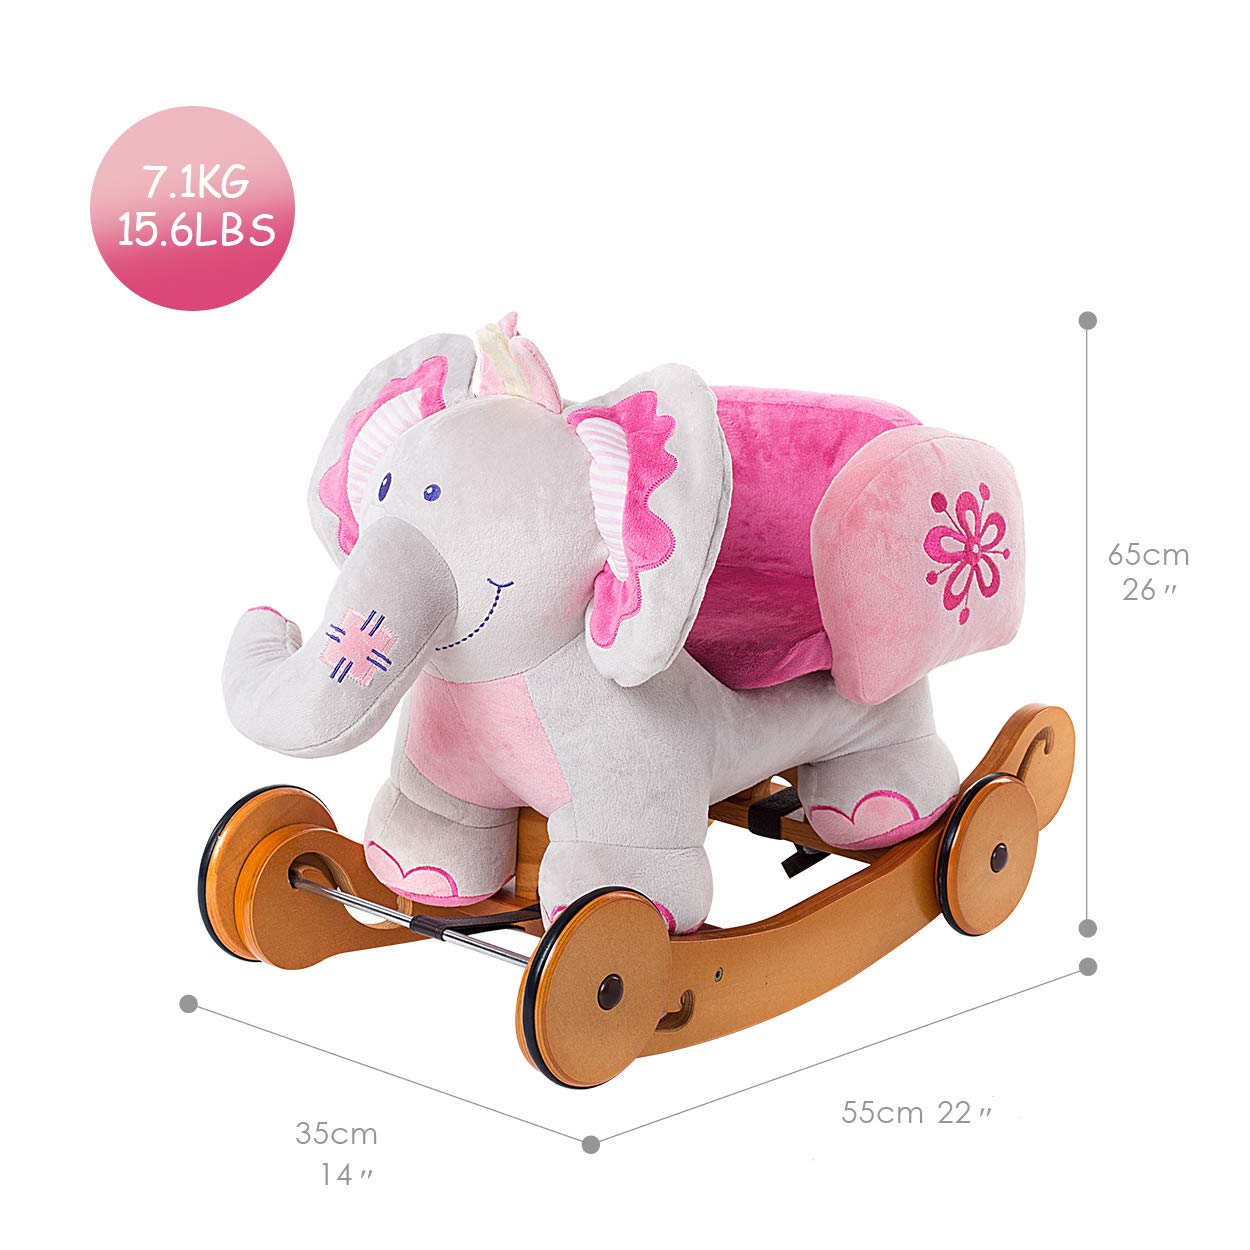 - Padded Yellow Giraffe with Sound Paper 6-36 Months Hessie Modern Plush Rocking Horse with Soft Cute Stuffed Animal Indoor Ride On Toys Rockers with Wheels for Toddlers Kids Little Boys /& Girls